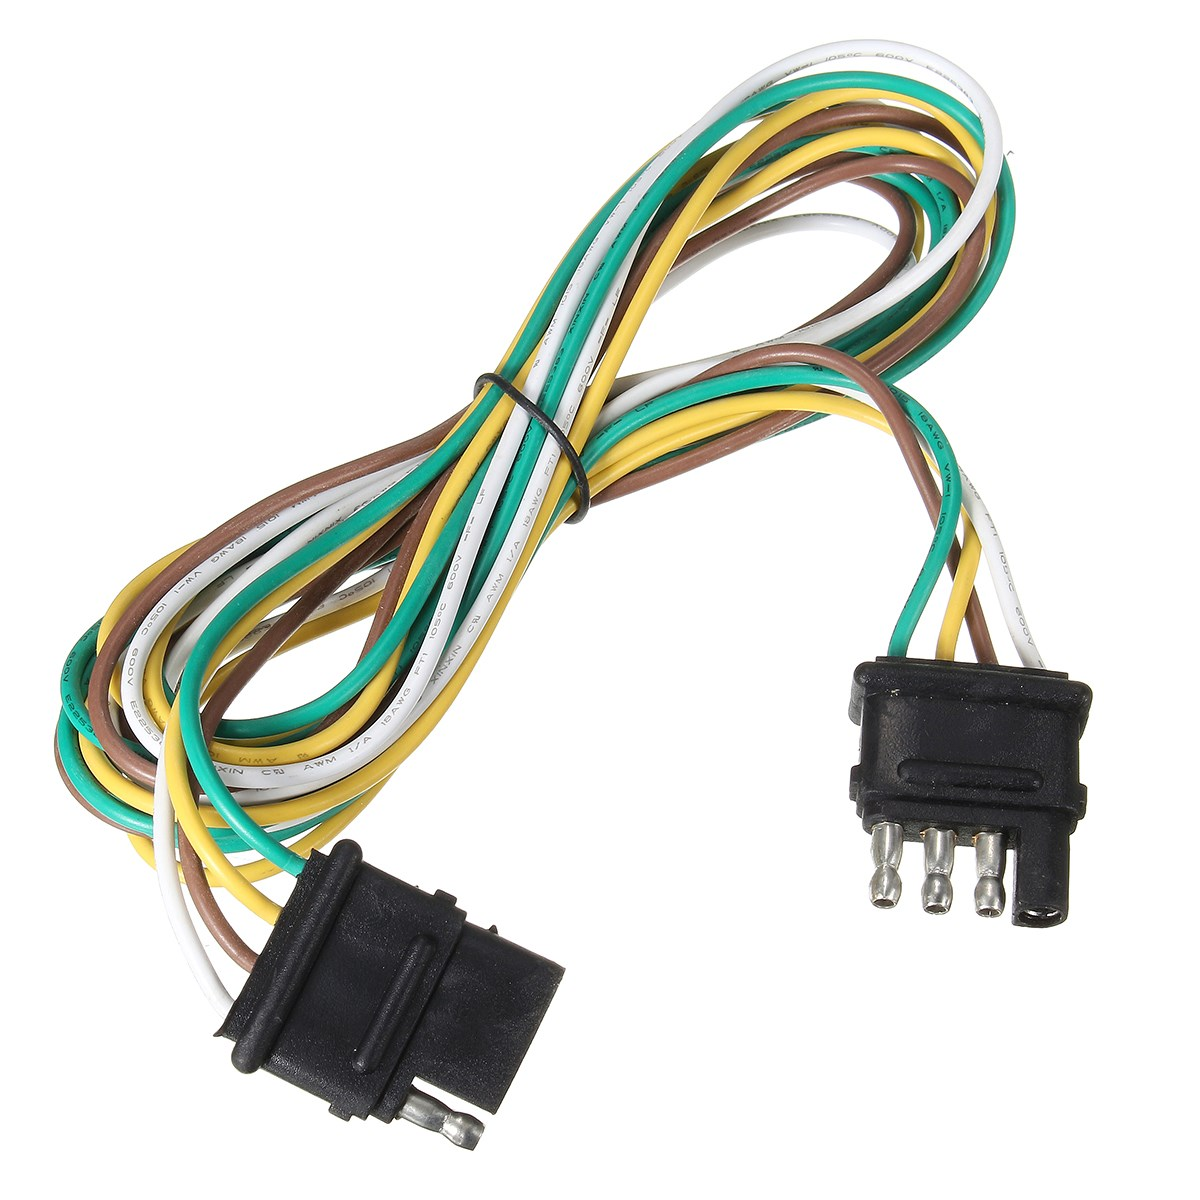 online buy whole 4 pin trailer connector from 4 pin 4 way pins trailer end light wiring harness bonded 4 pole flat connector extension plug wire